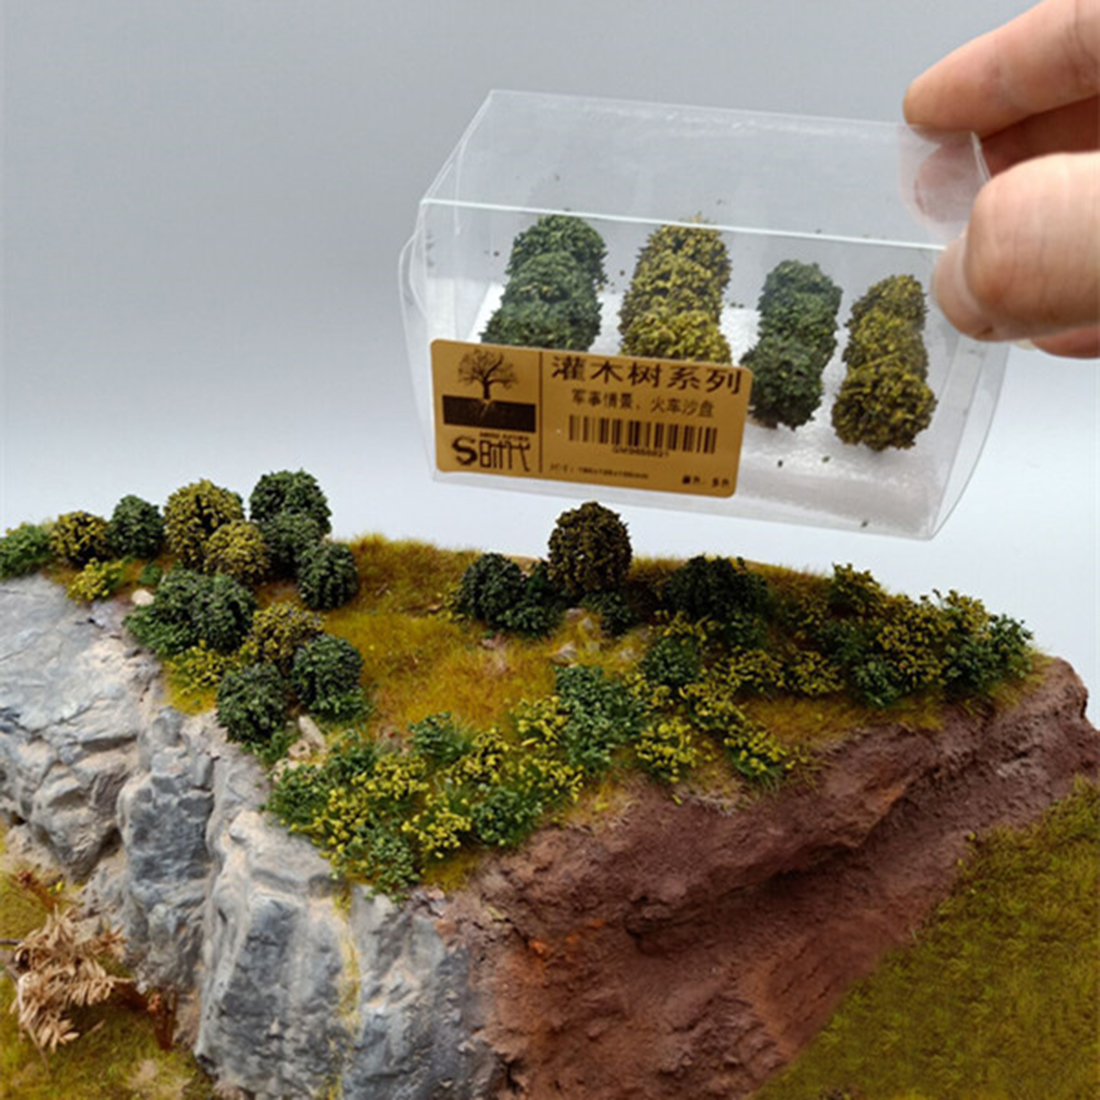 12Pcs Simulation Bush Tree Scene Model For 1:35/1:48/1:72/1:87 Scale Sand Table Tree Miniatures Landscape Miniature Decor